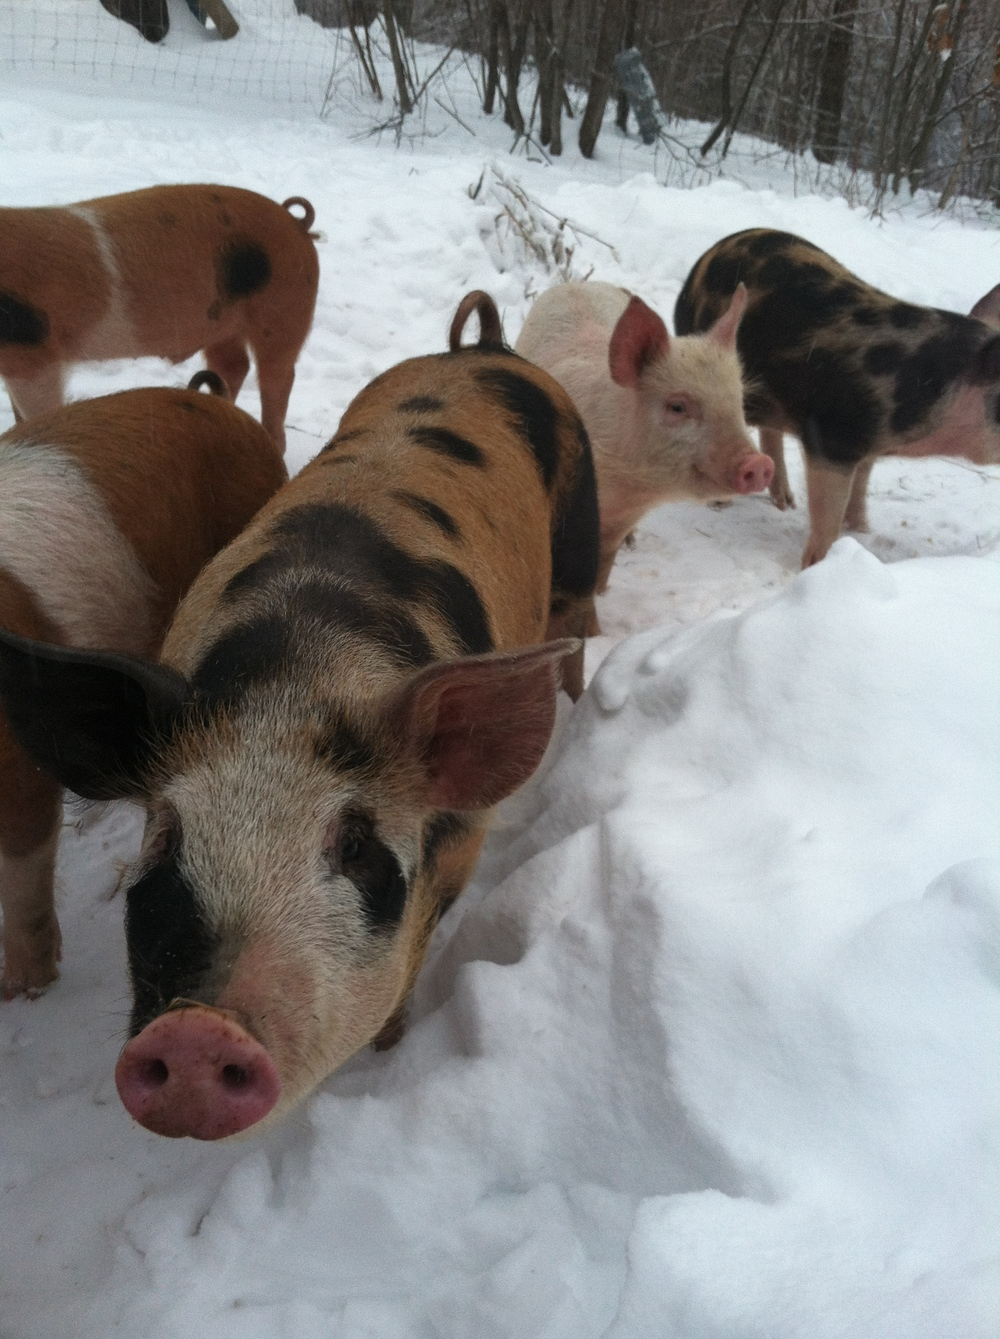 Snow pigs. This fella is always in front.